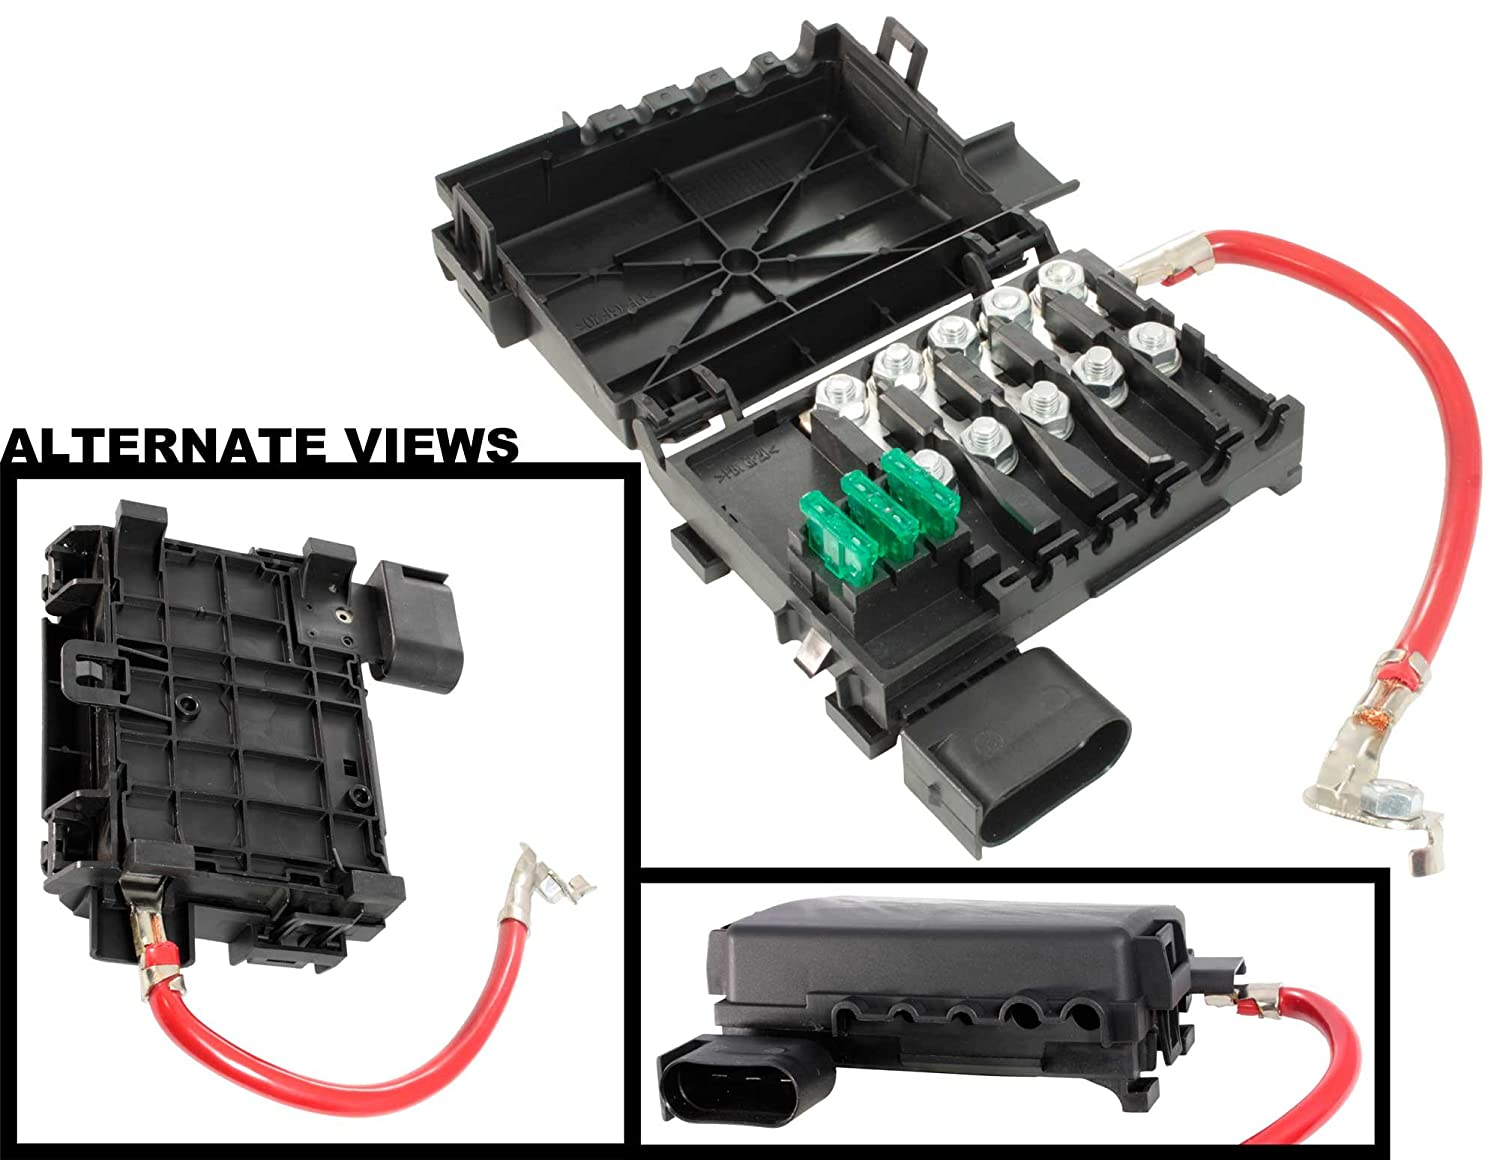 APDTY 035791 Fuse Box embly Battery Mounted w/New Fuses ... on jetta alternator, jetta door panel, jetta cam sensor, jetta motor mount, jetta bumper guard, jetta trailing arm, jetta hood release, jetta sway bar, jetta loaded beam axle, jetta console, jetta fuse tool, jetta slave cylinder, jetta catalytic converter, jetta fuse card, jetta battery, jetta firing order, jetta relay box, jetta sportwagen 2011 fuse diagram, jetta shifter cable, jetta cigarette lighter fuse,